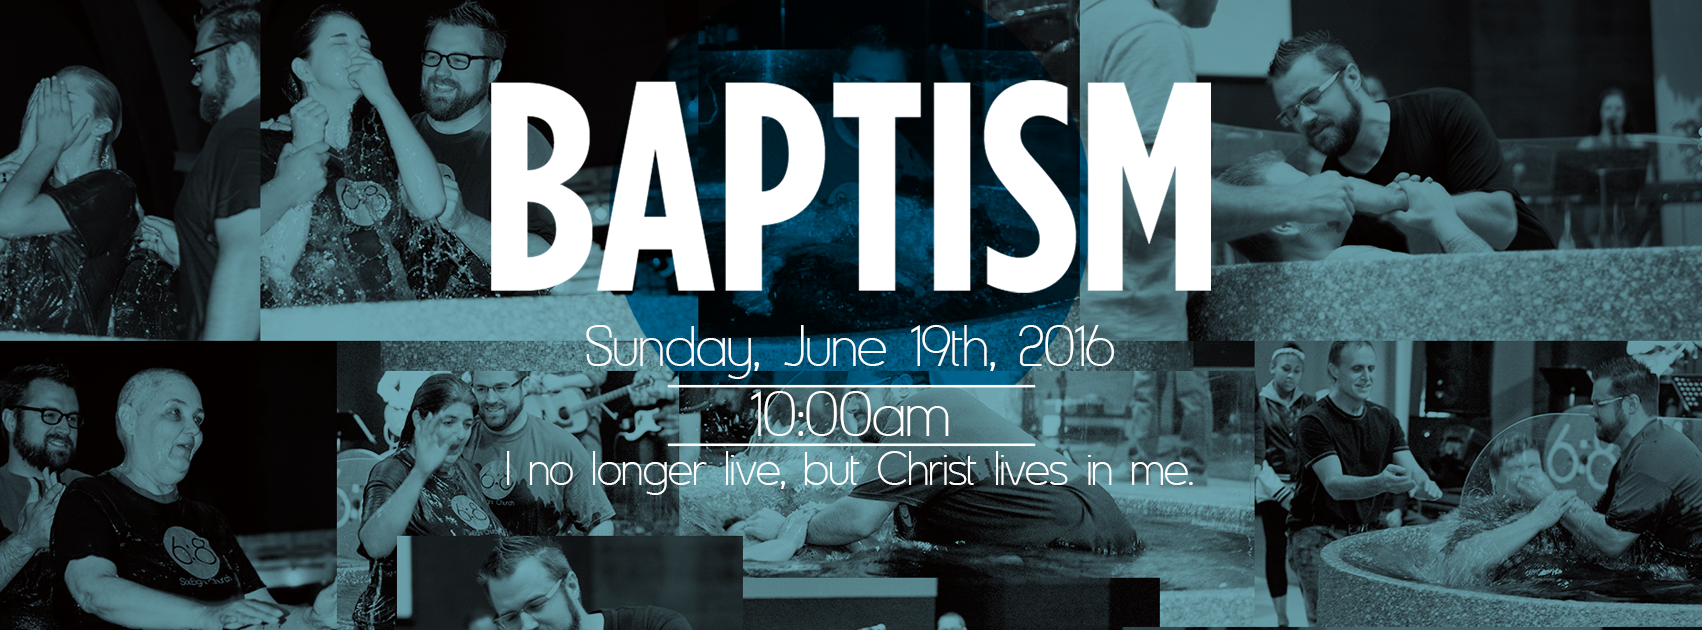 Baptism Sunday, June 19, 2016